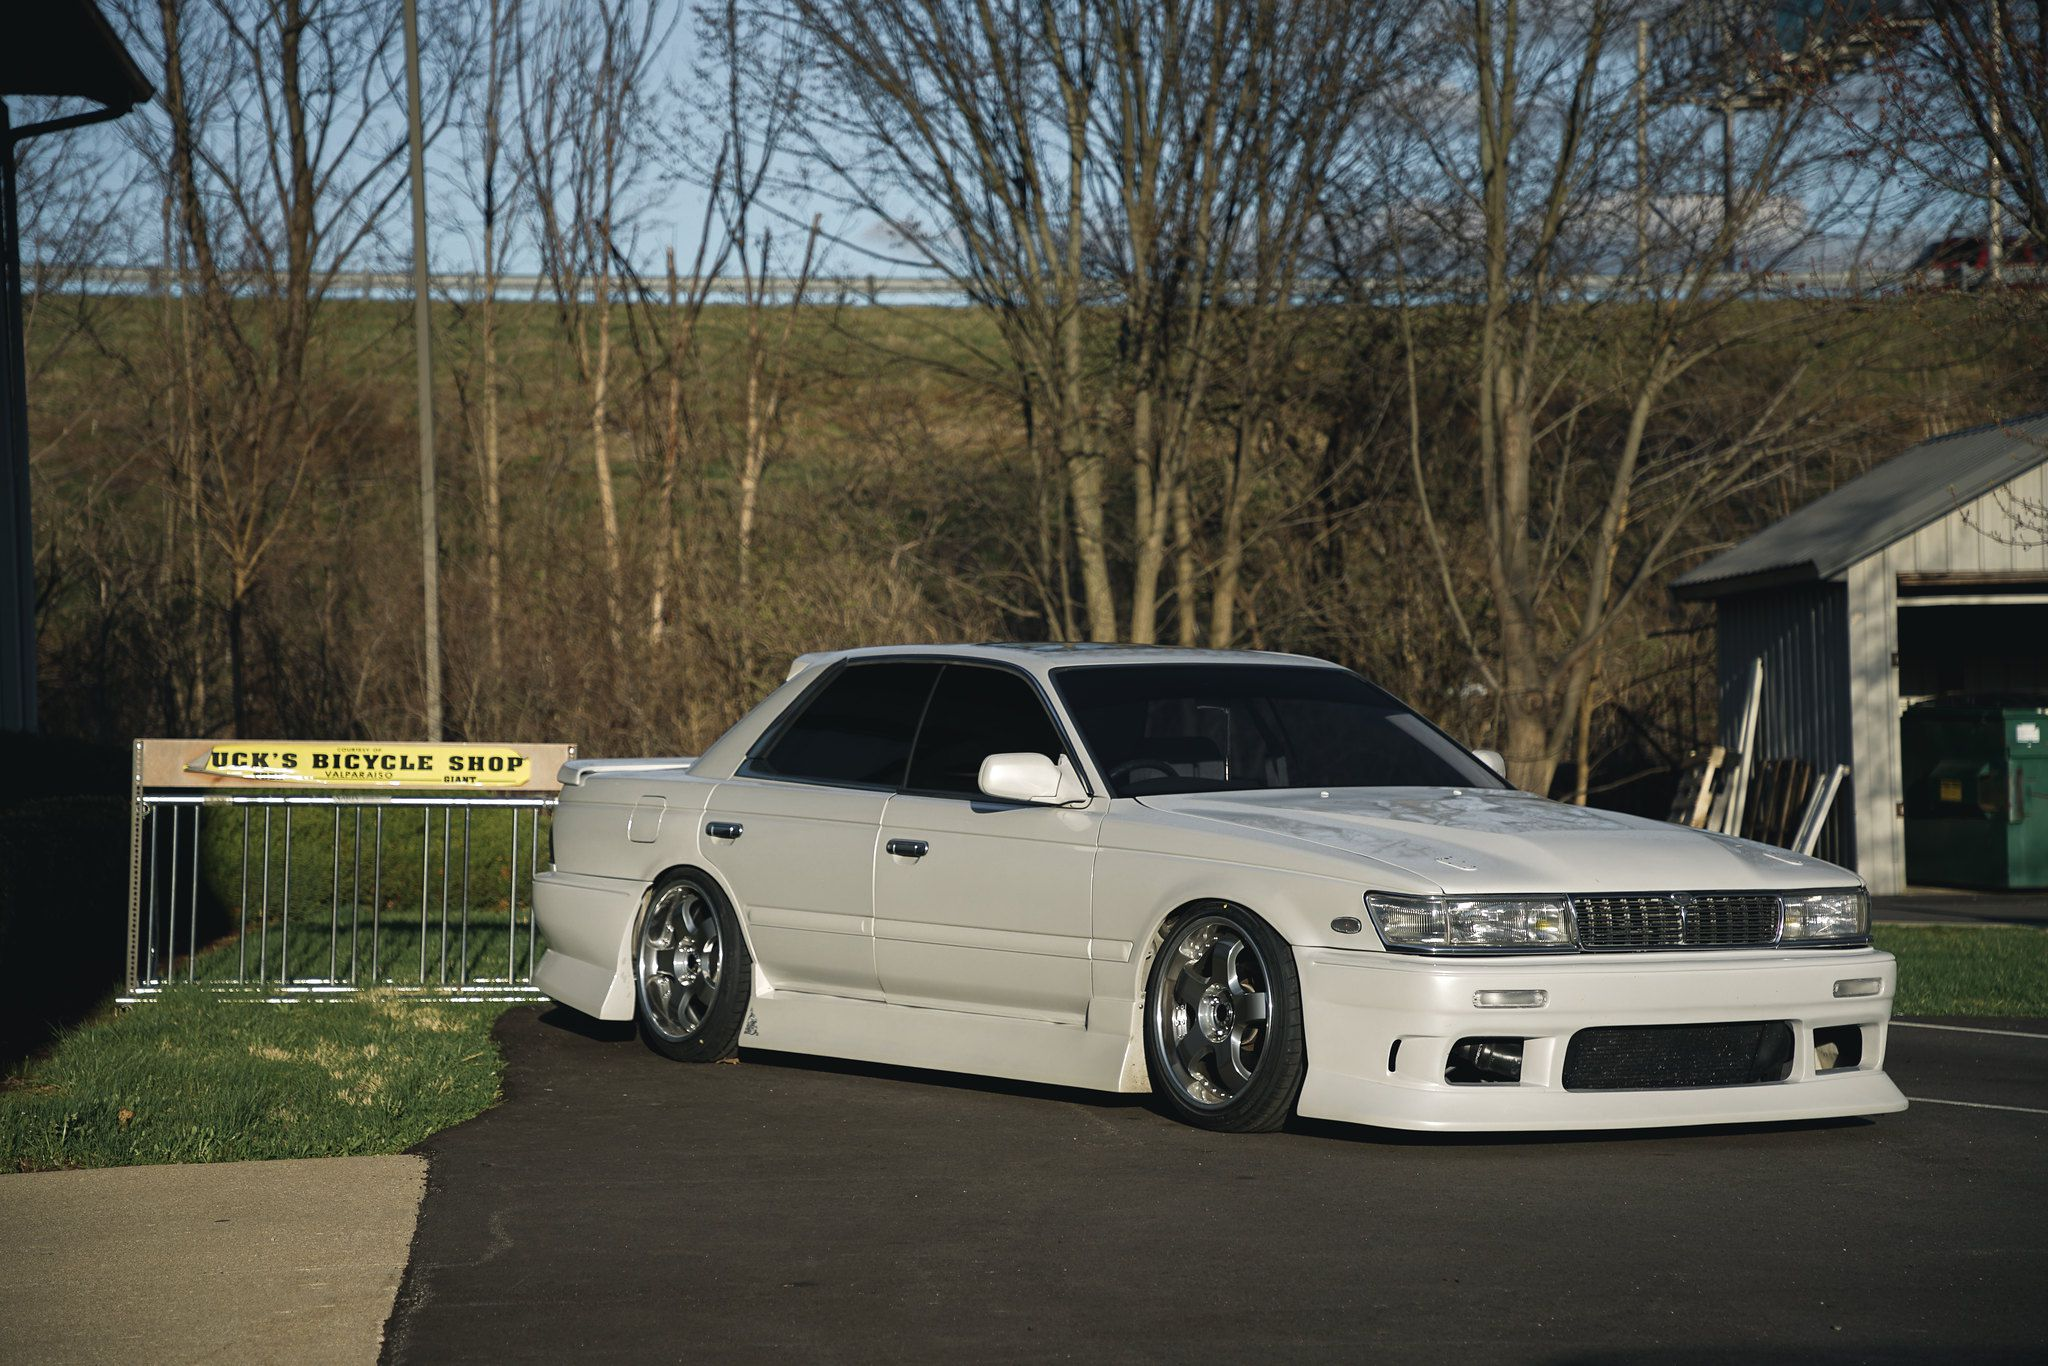 White Nissan Laurel at trees background